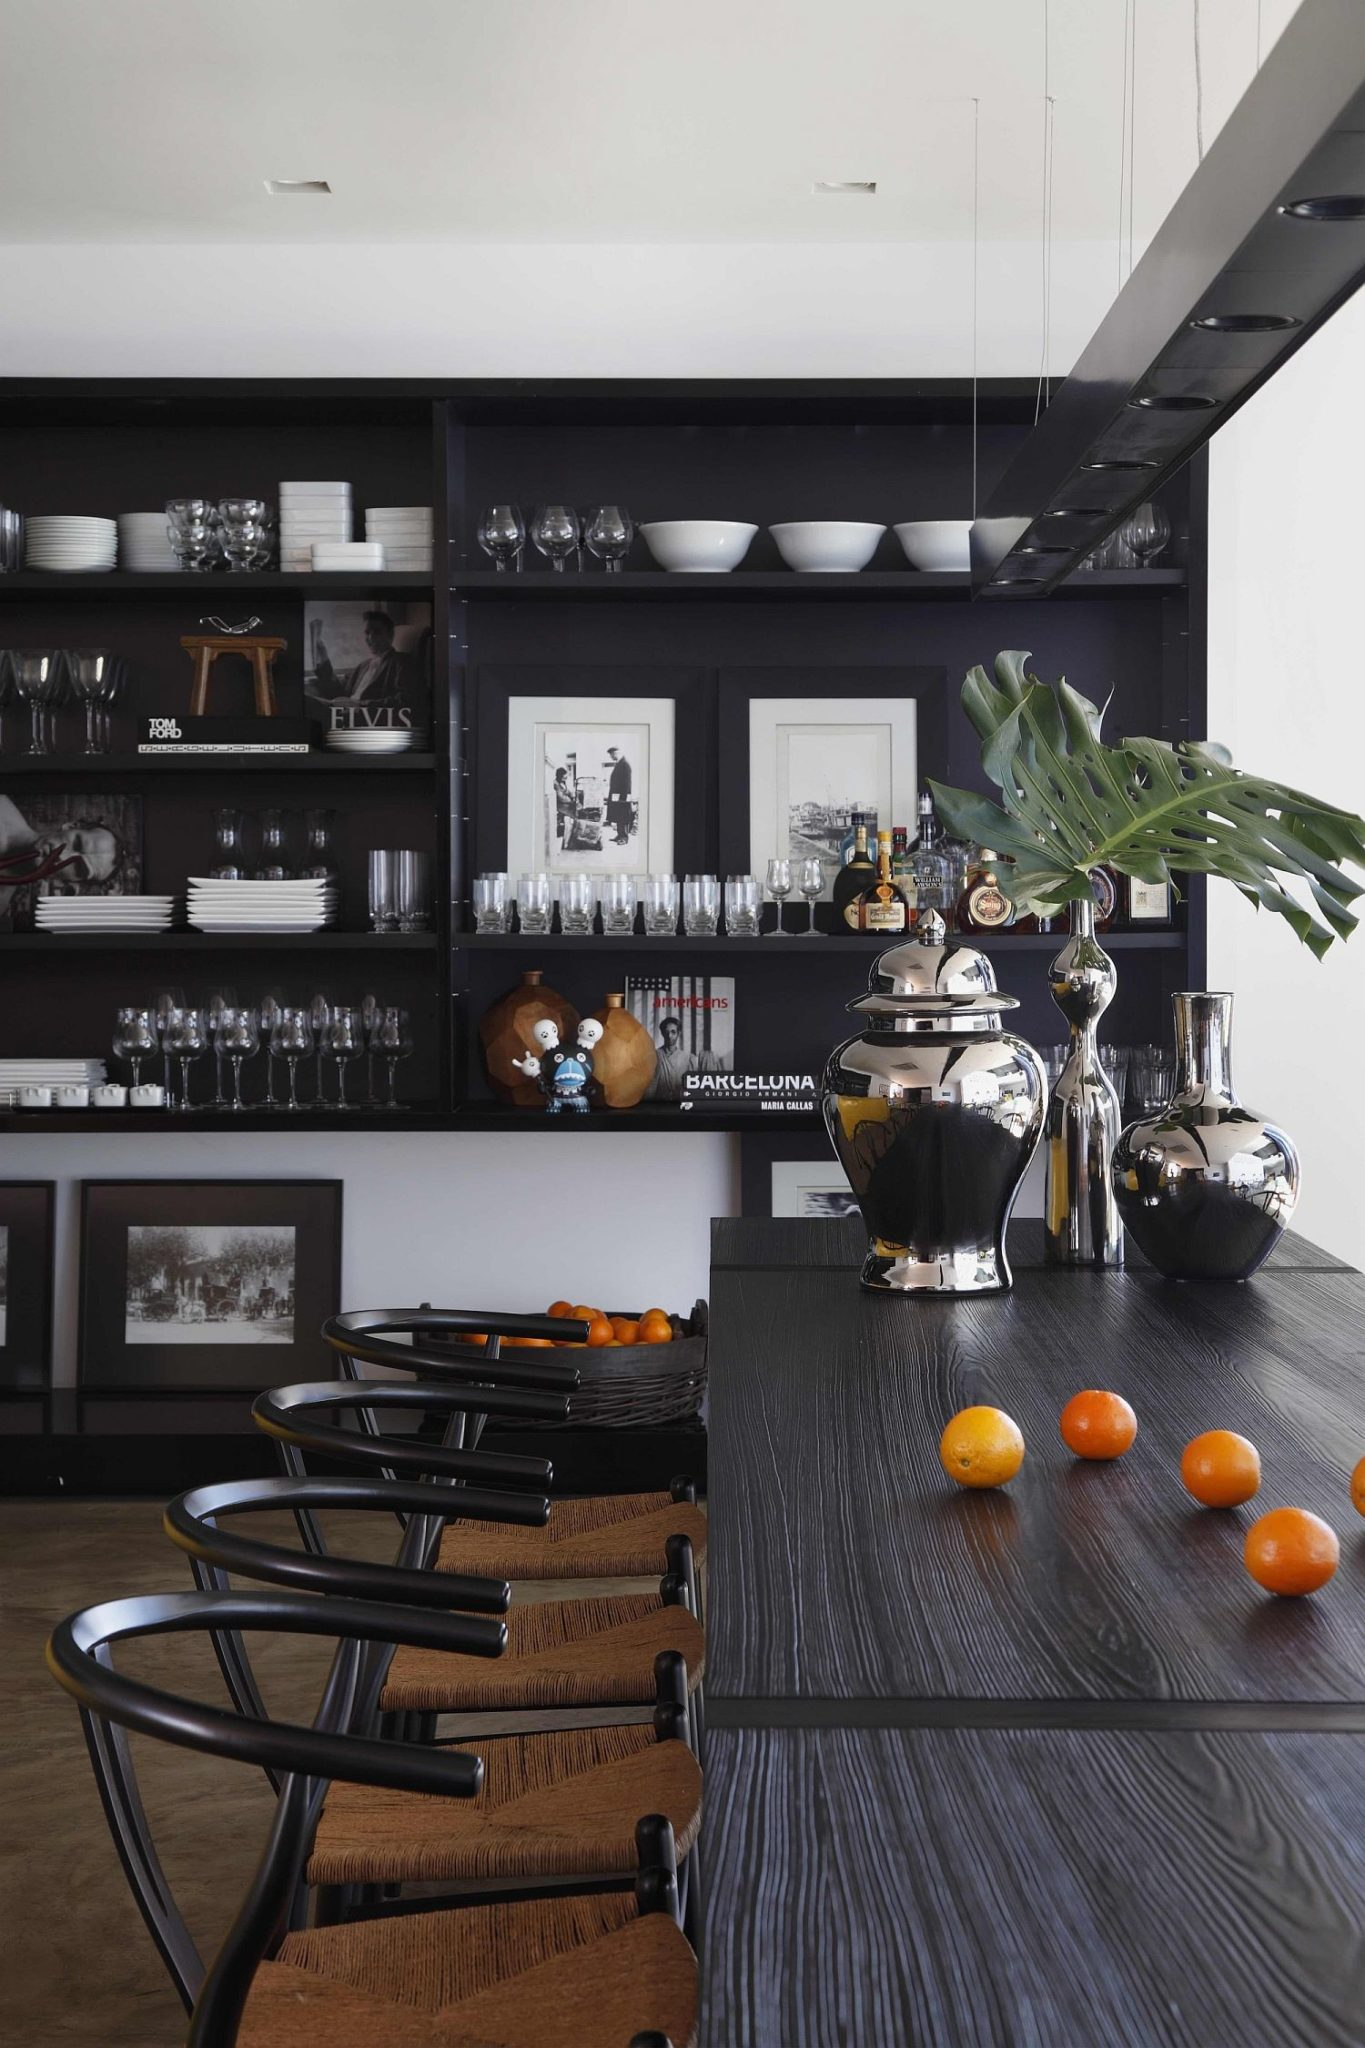 Black brings sophistication and modernity to the contemporary kitchen